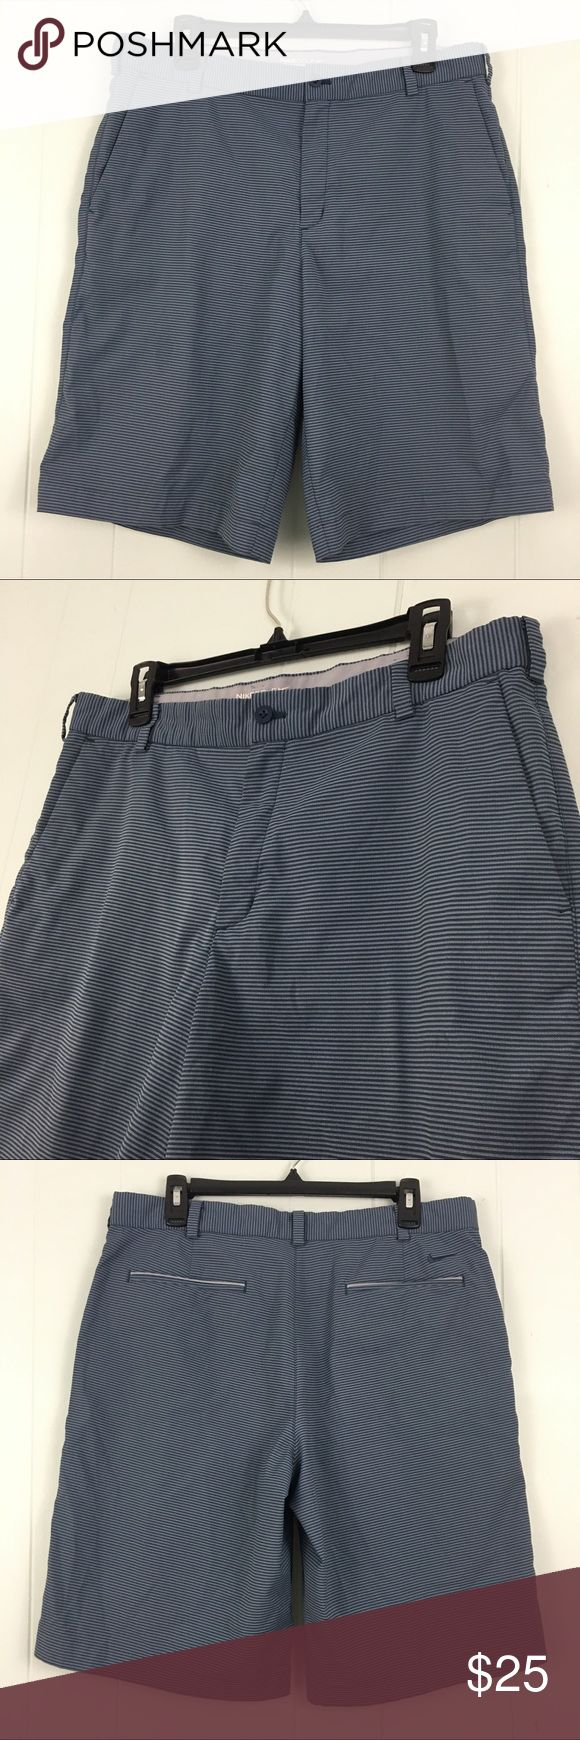 "Nike Golf Dry Fit Men's Shorts 34"" Waist Brand:  Nike Golf w/ Dry-Fit Technology  Condition:  This item is in Good Pre-Owned Condition! There are NO Major Flaws with this item, and is free and clear of any Noticeable Stains, Rips, Tears or Pulls of fabric. Overall This Piece Looks Great and you will love it at a fraction of the price!  Material:  95% Polyester 5% Spandex  Size:  34"" Waist  💥Top Rated Seller 💥Top 10% Sharer 💥Posh Mentor 💥Super Fast Shipper Nike Shorts Flat Front"